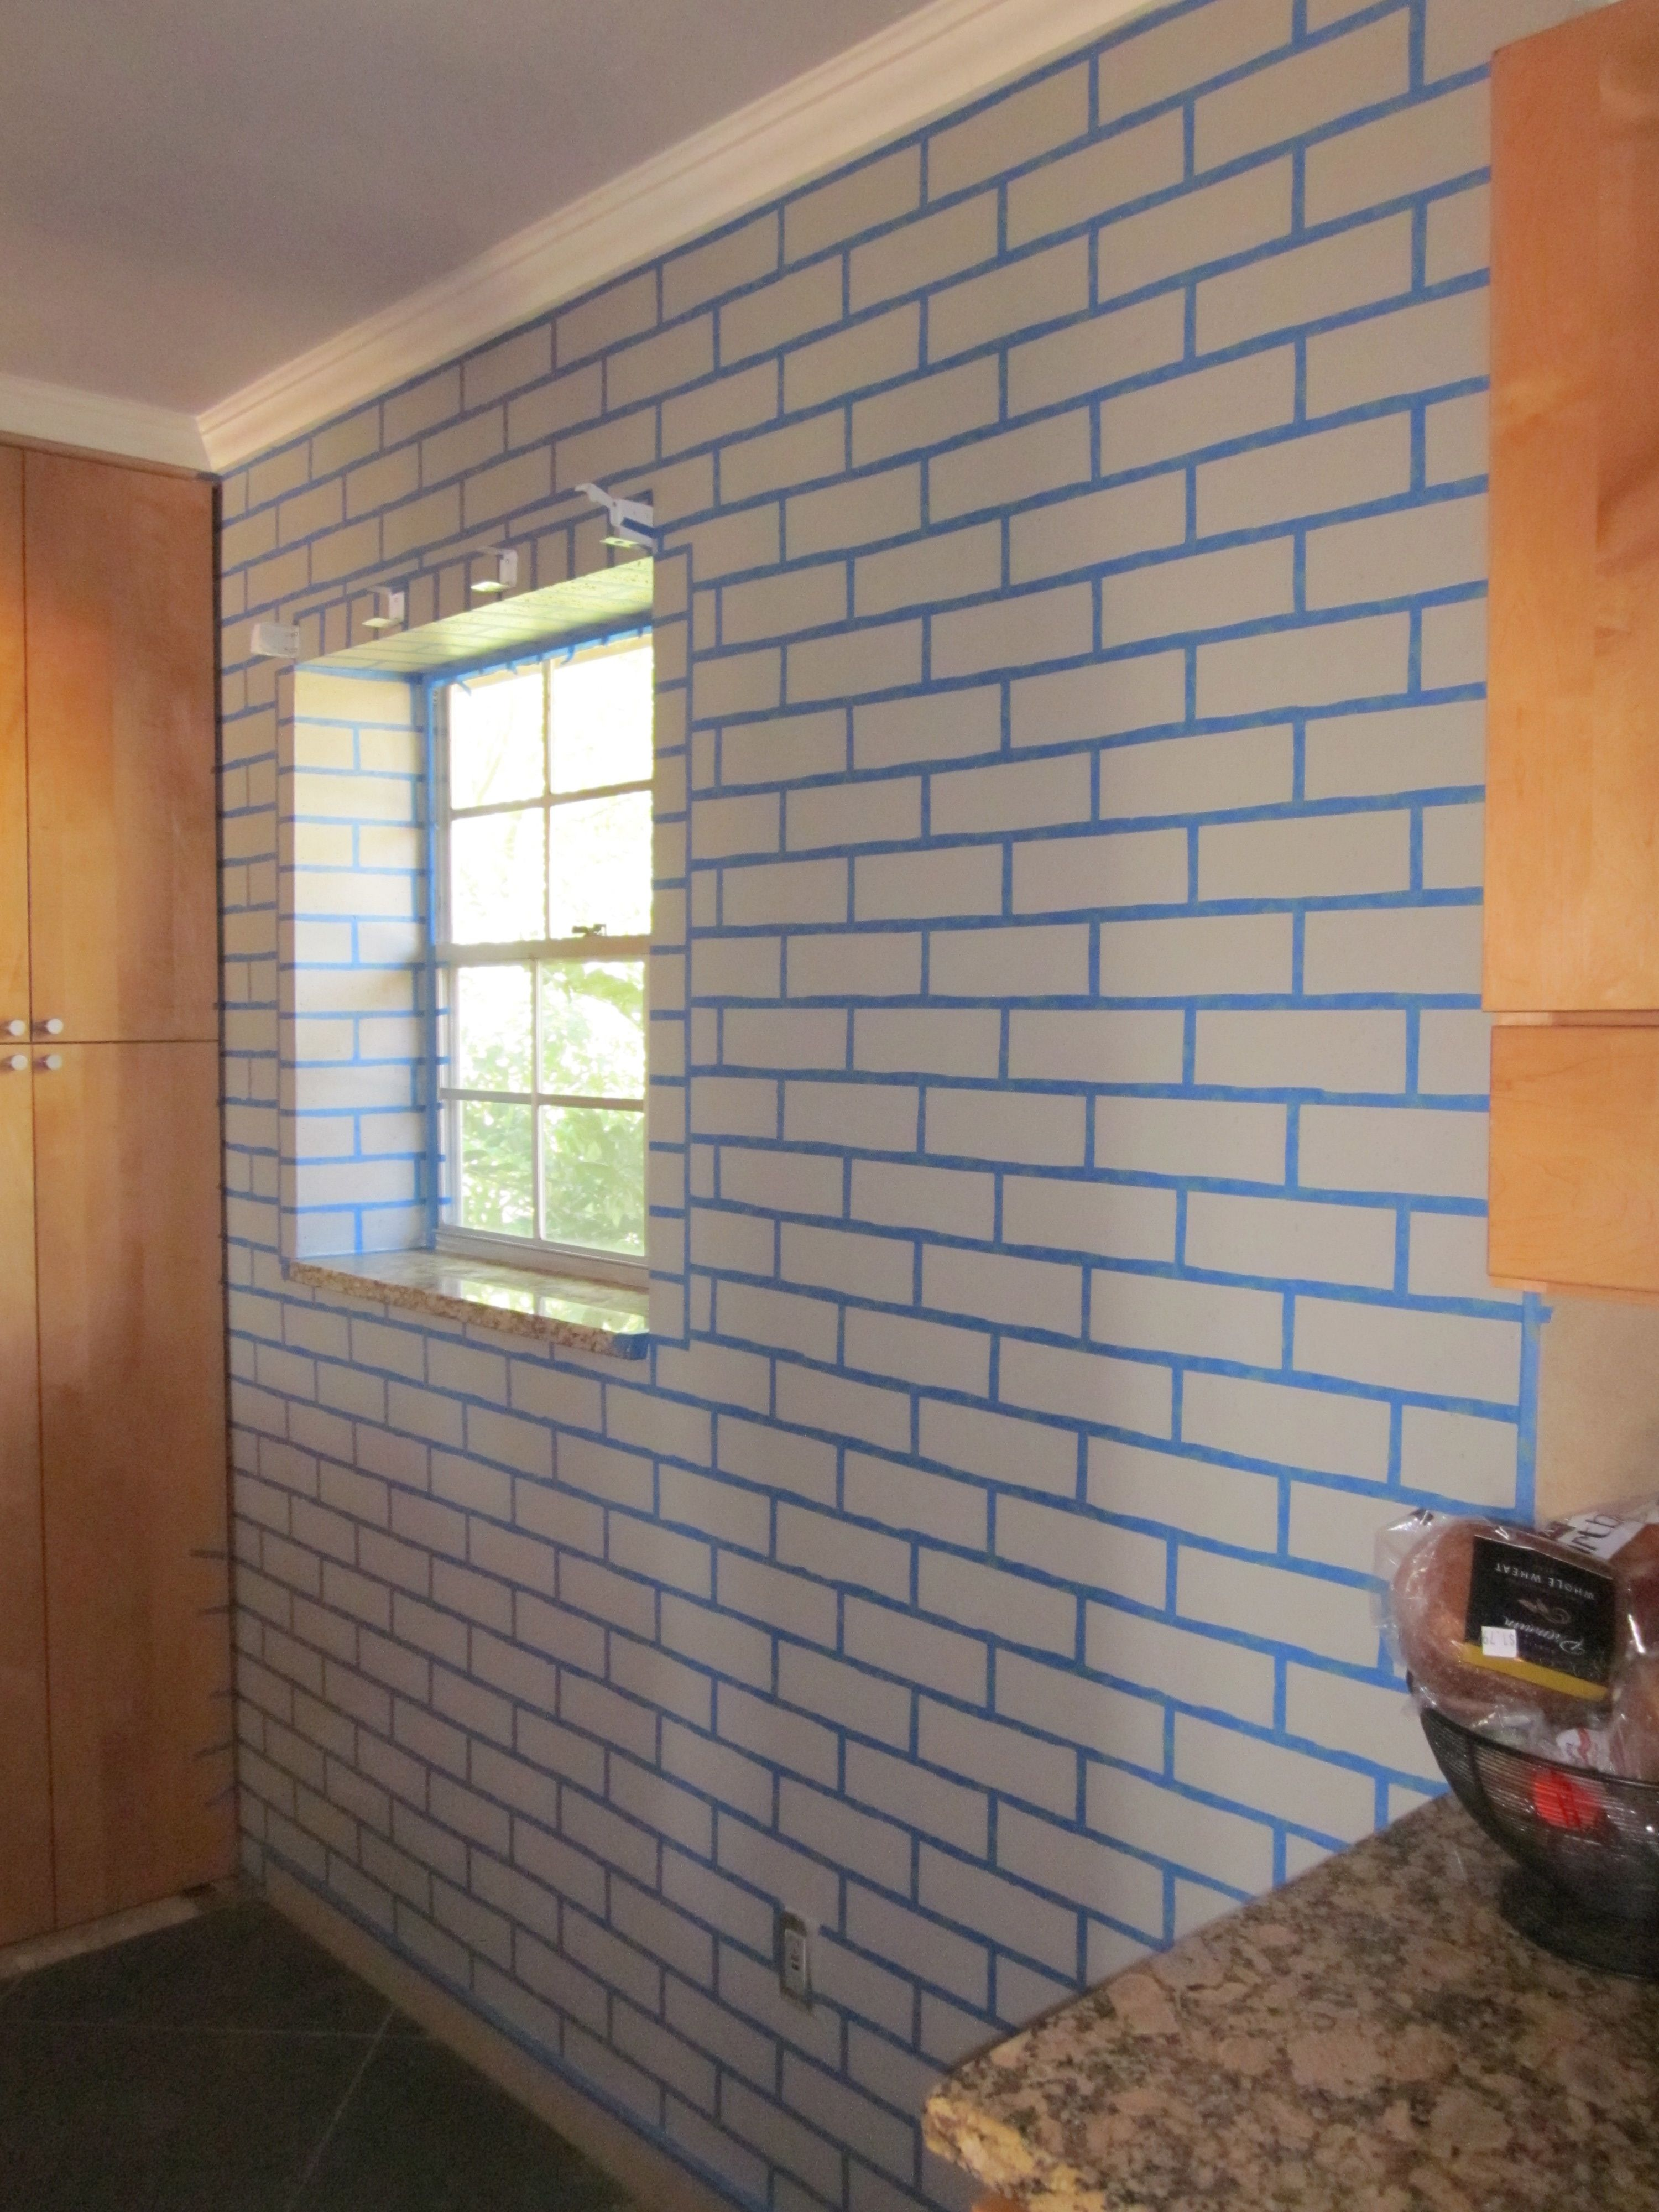 painting a realistic faux brick wall - Interior Faux Brick Wall Ideas